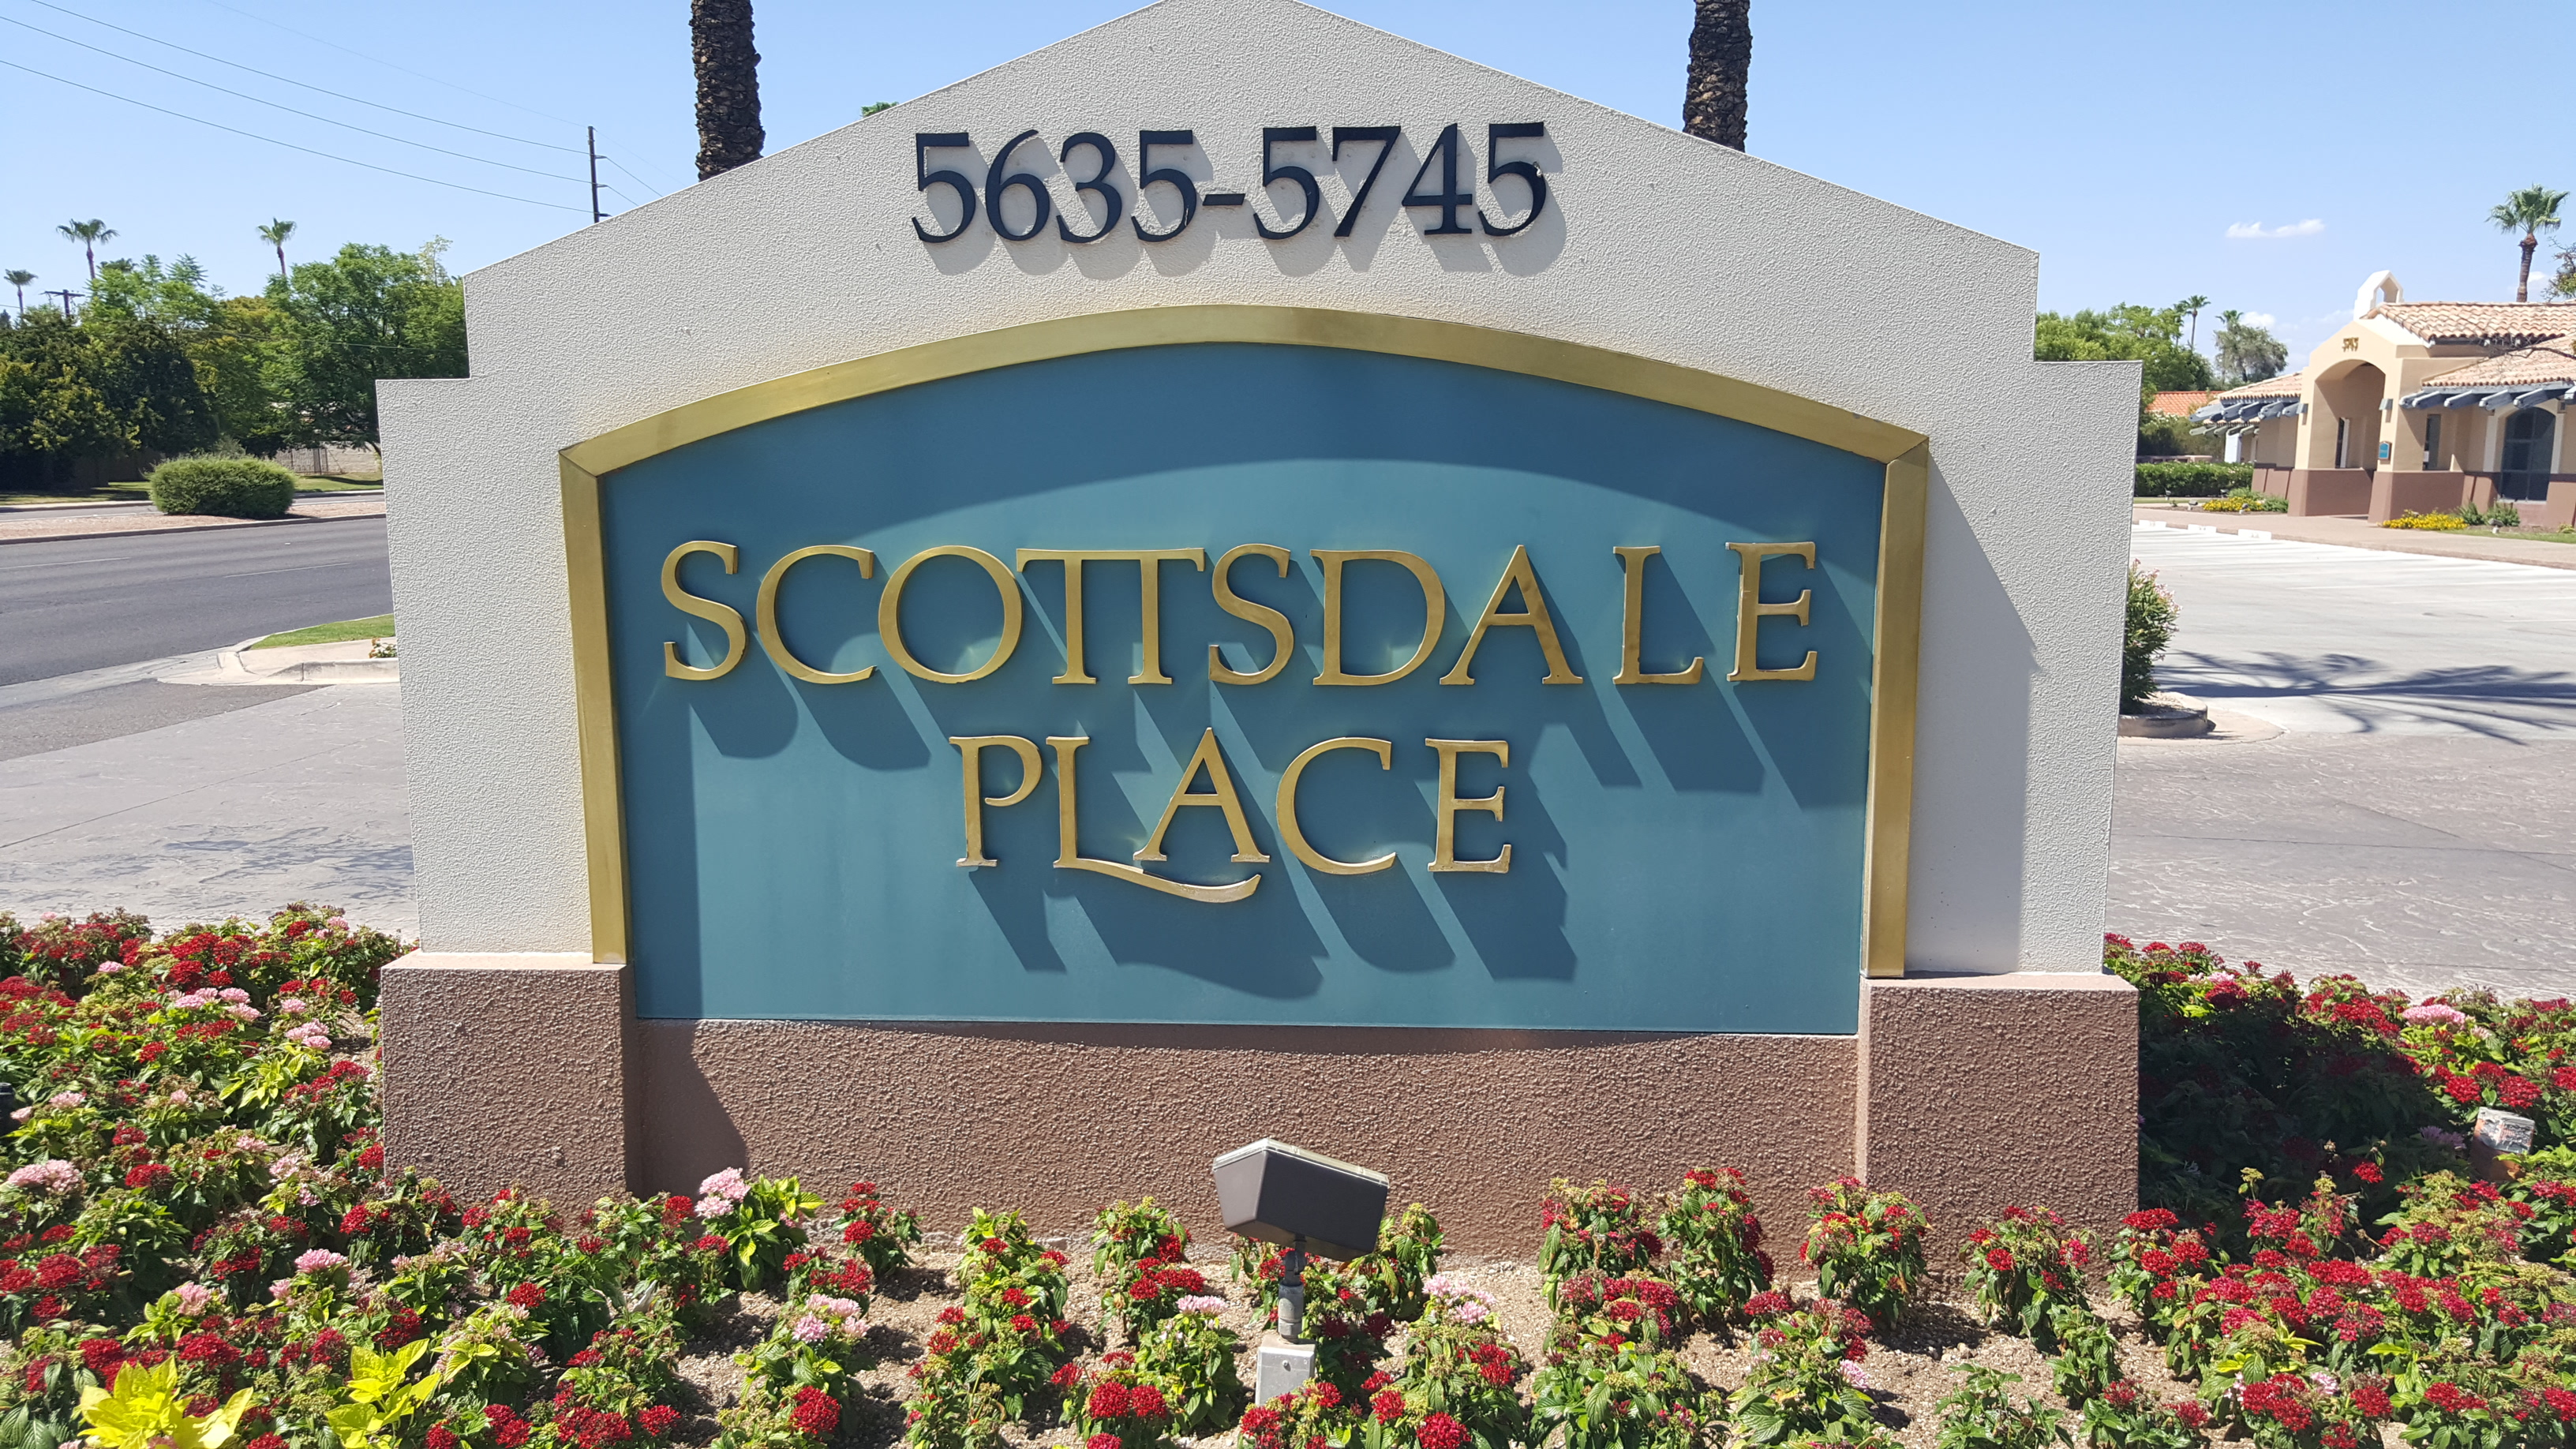 Scottsdale sign on road to get to Scottsdale Bankruptcy Attorney office-2